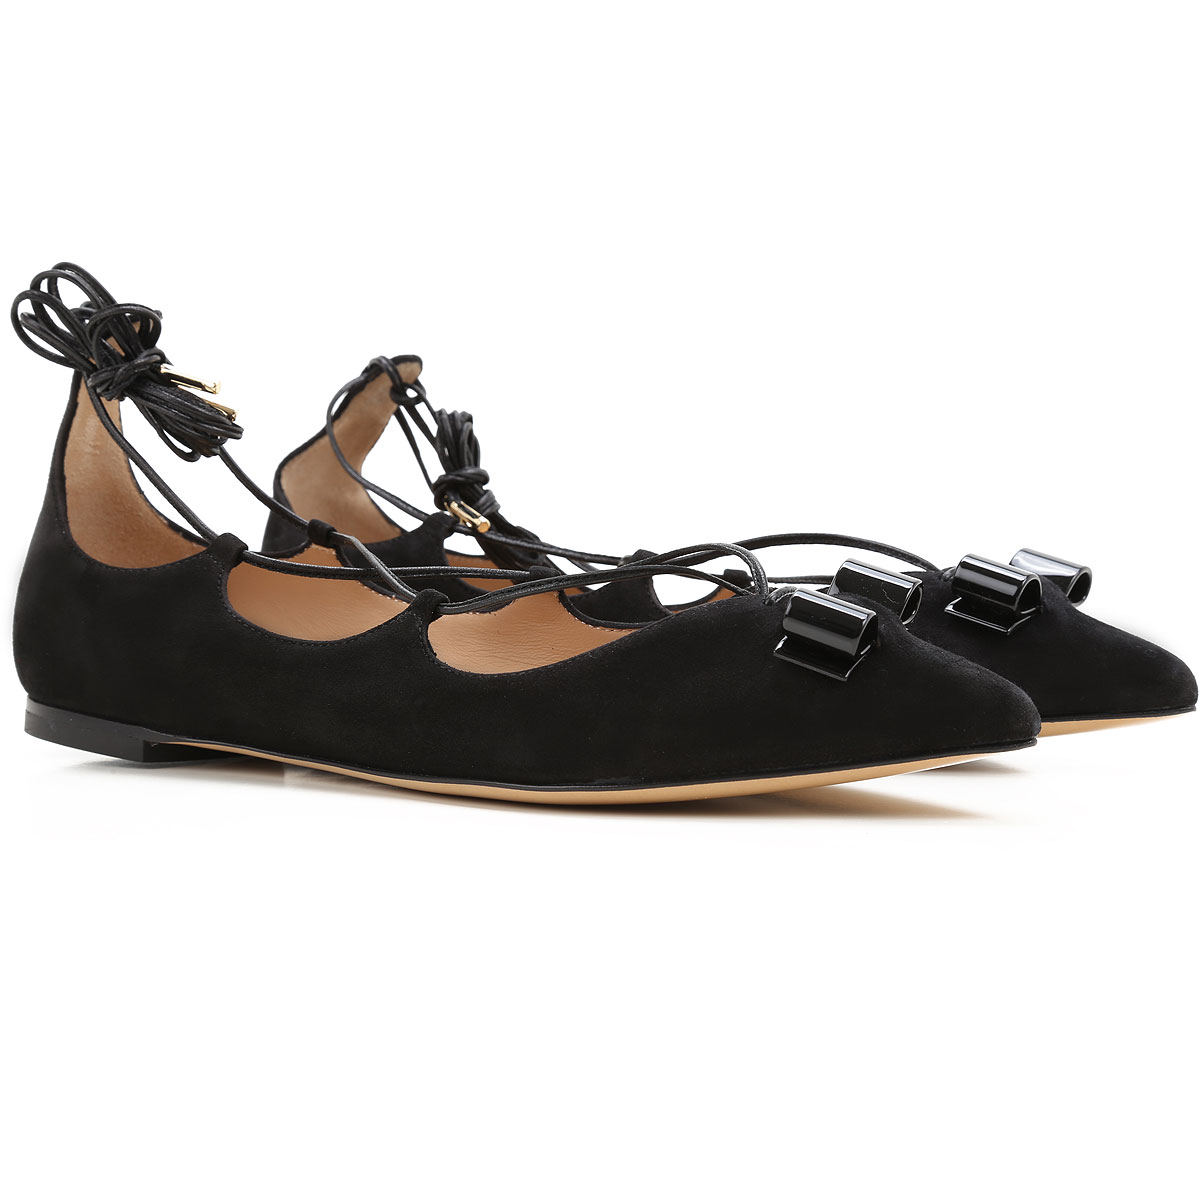 Image of Salvatore Ferragamo Ballet Flats Ballerina Shoes for Women On Sale in Outlet, Black, Suede leather, 2017, 5.5 6 7 8 8.5 9.5